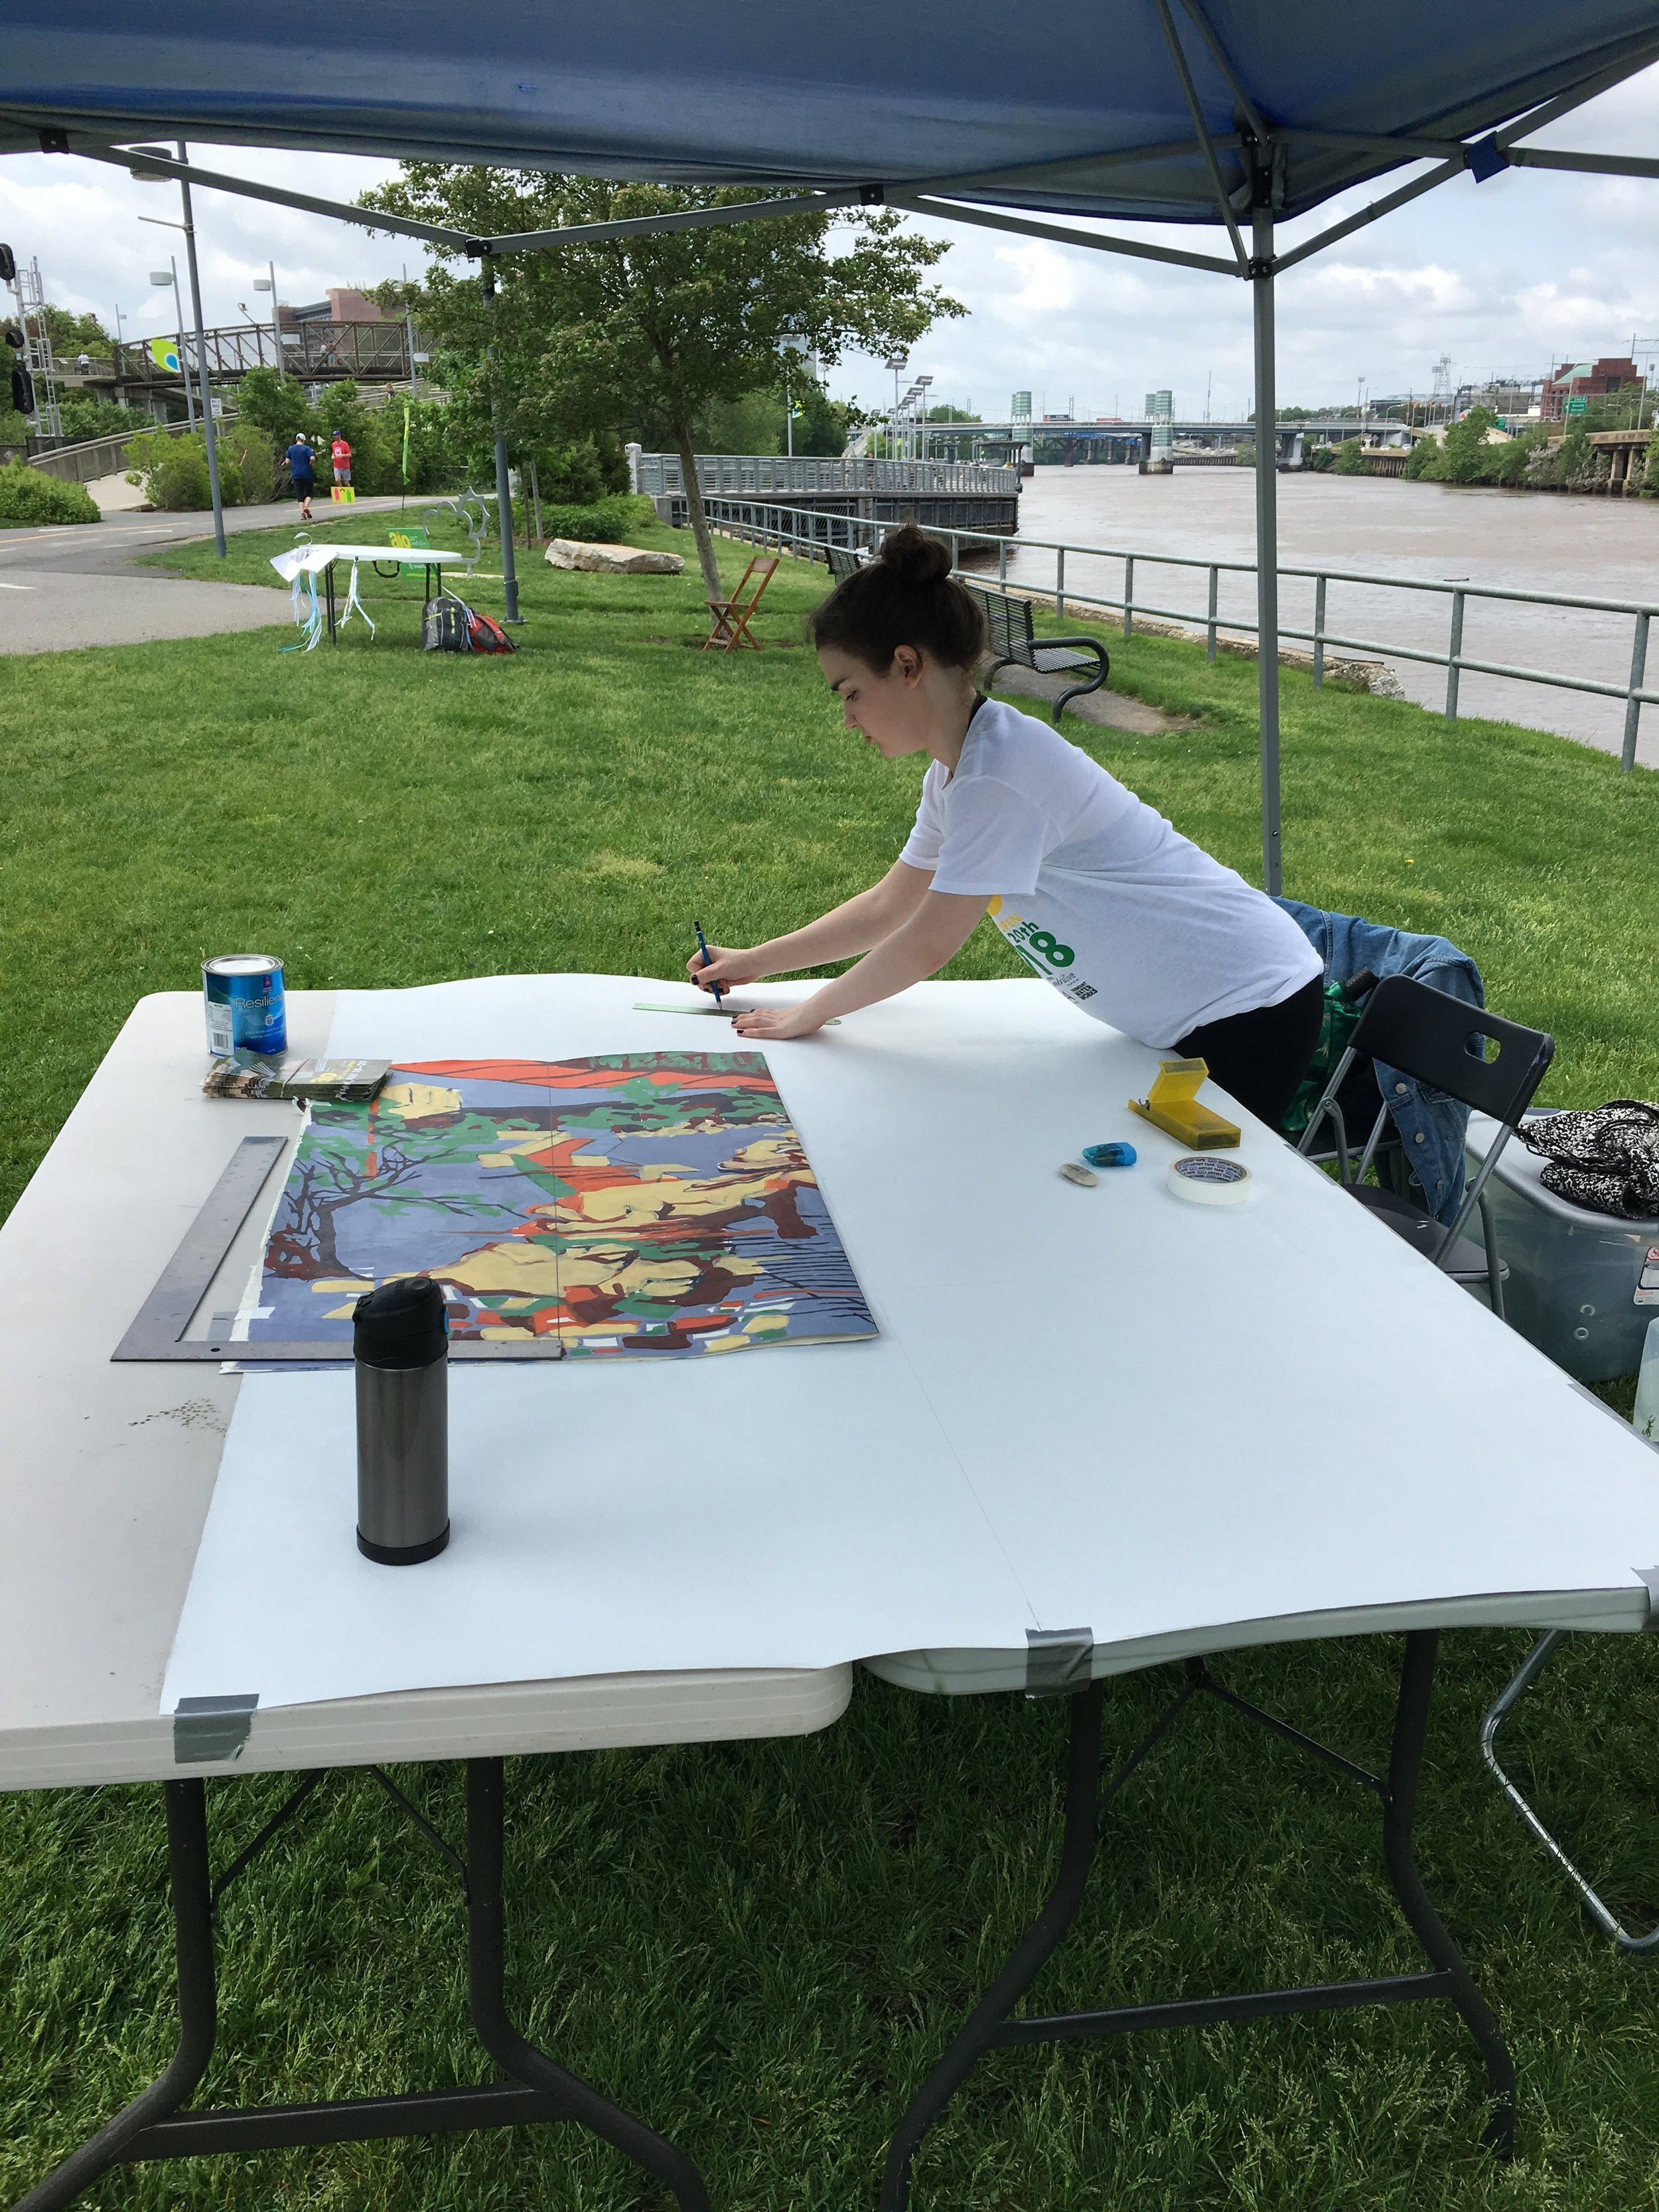 Laying out the mural, with Alyssa Willgruber